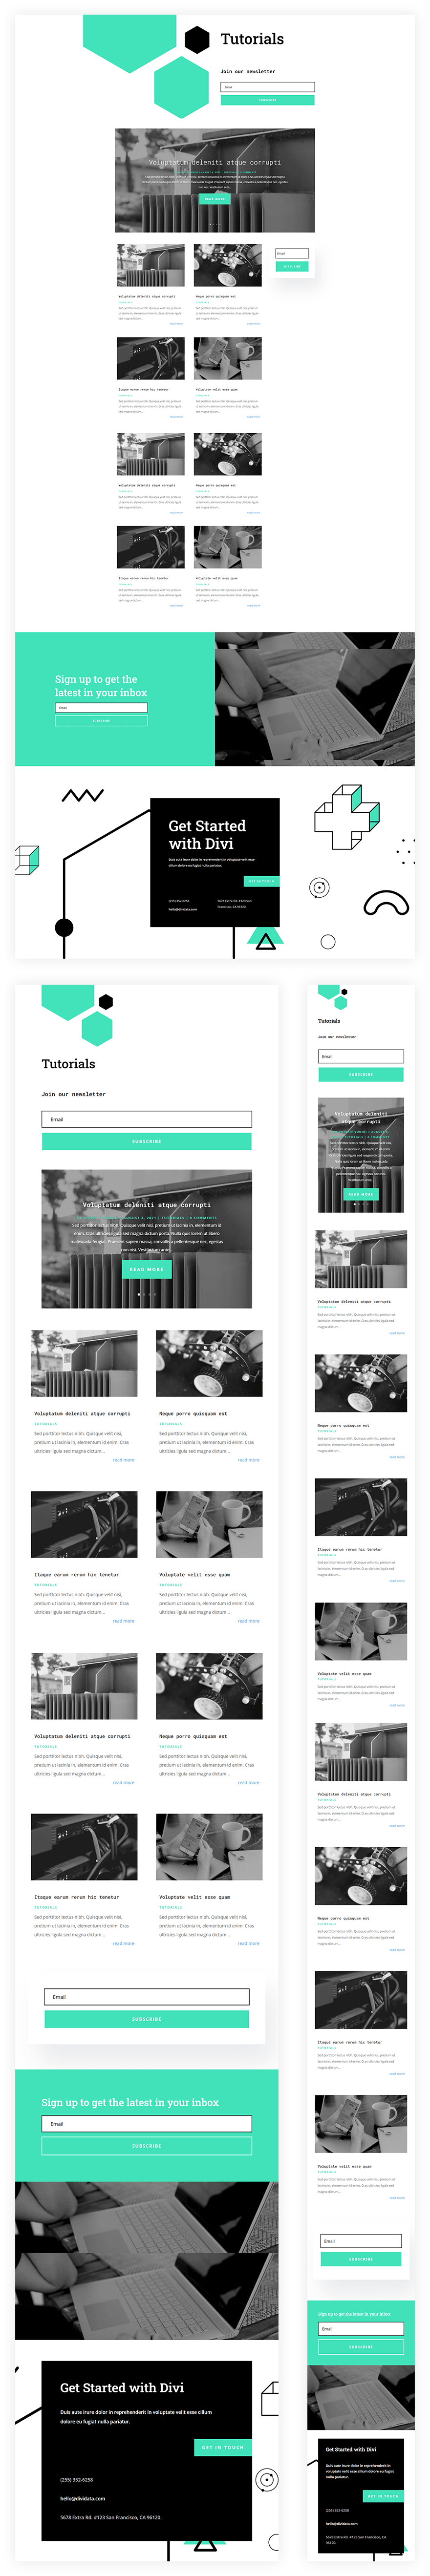 data science category page template